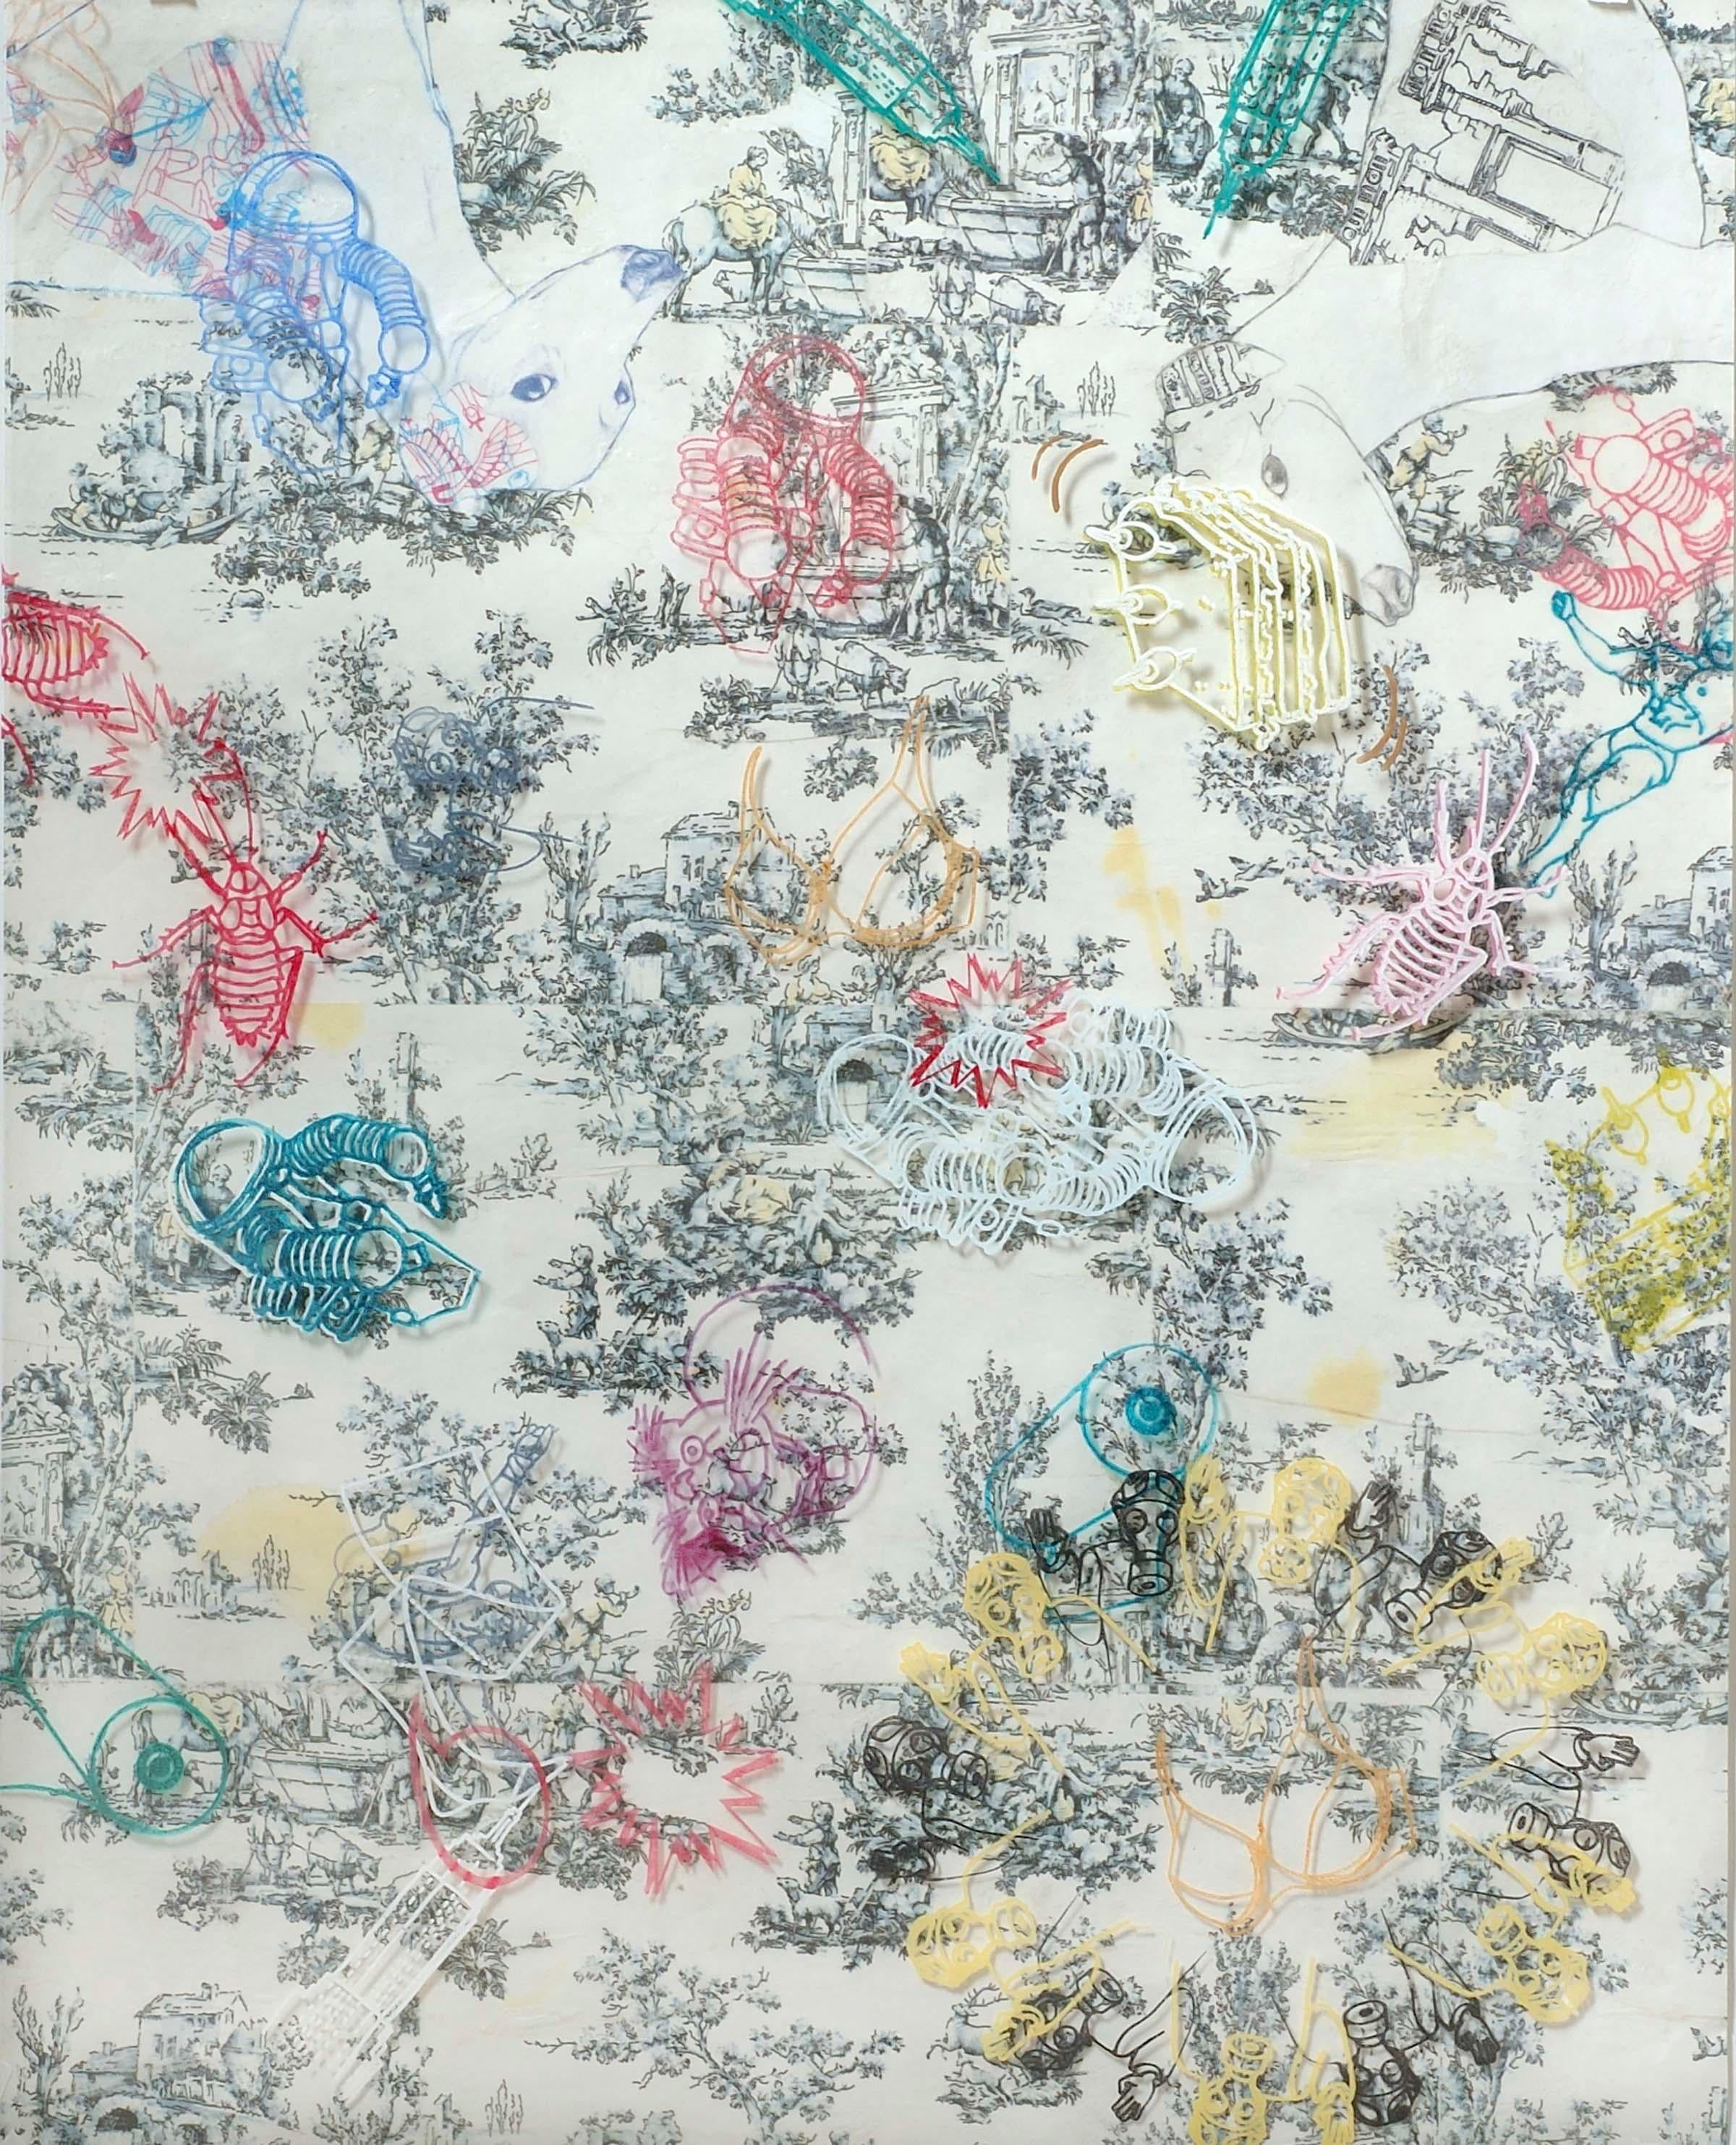 Biddles Toile, abstracted mixed media work, animals and flowers